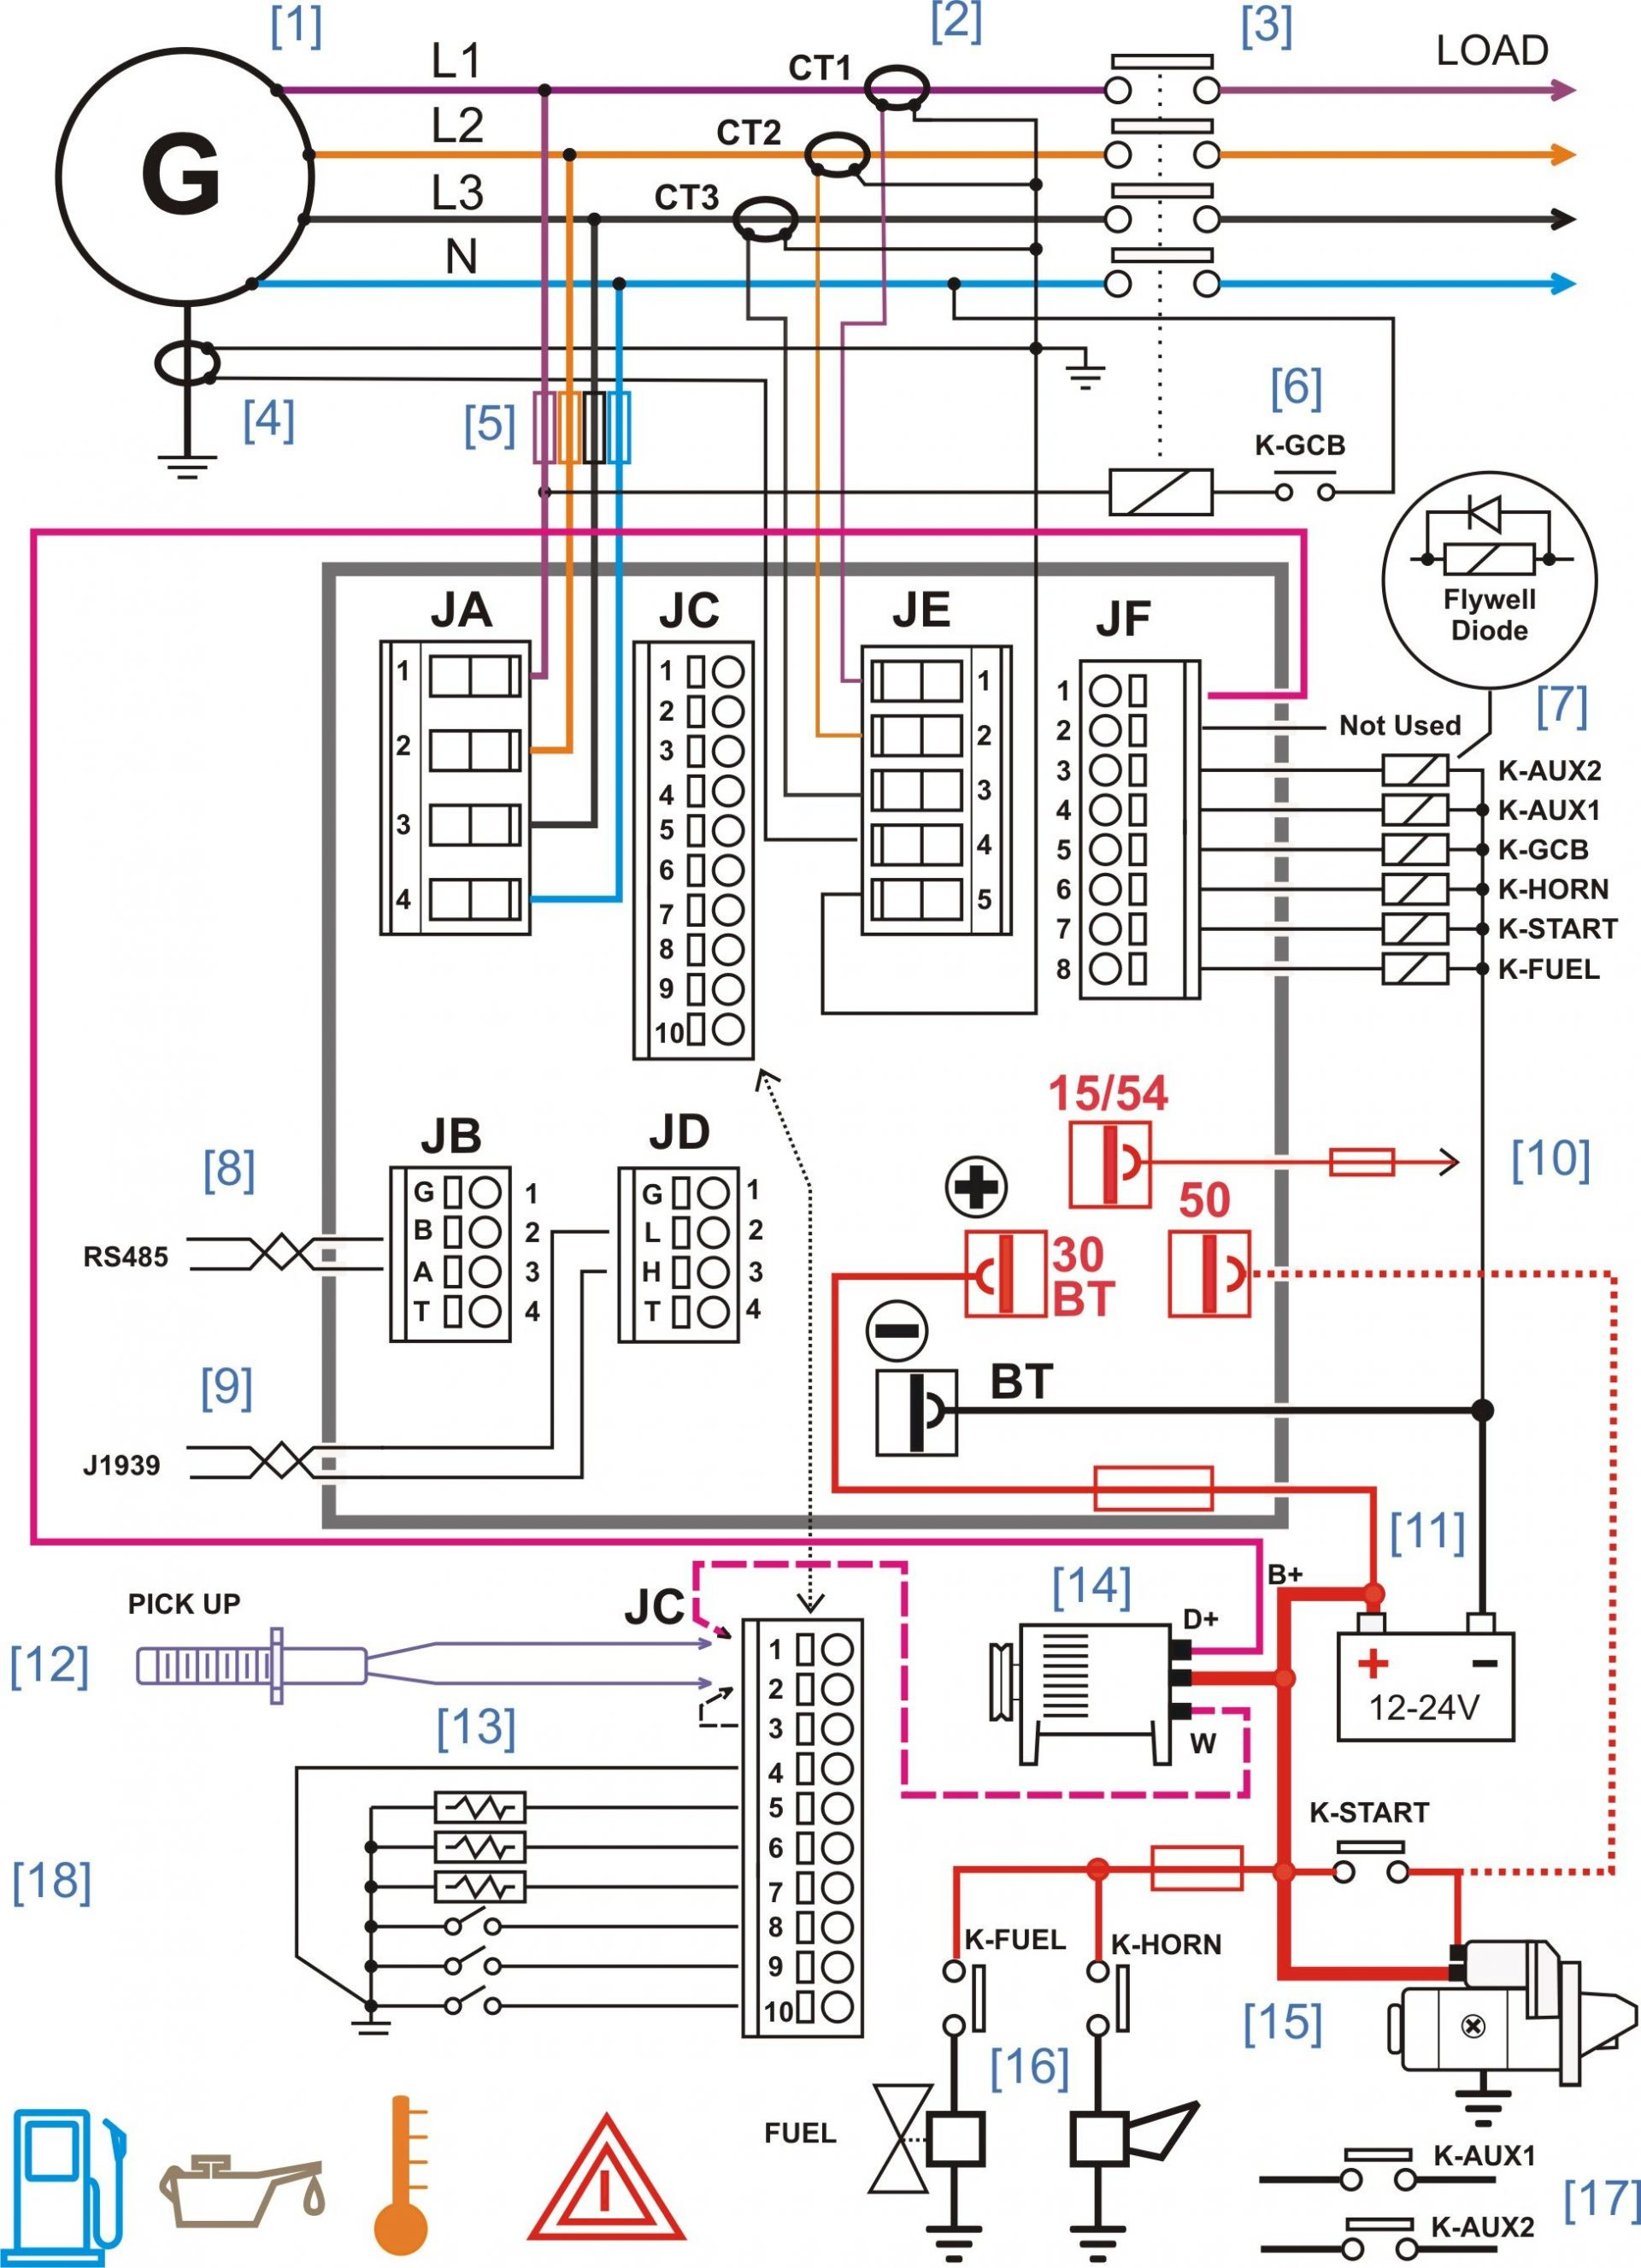 electrical panel wiring diagram Download-Electrical Panel Board Wiring Diagram 7-l